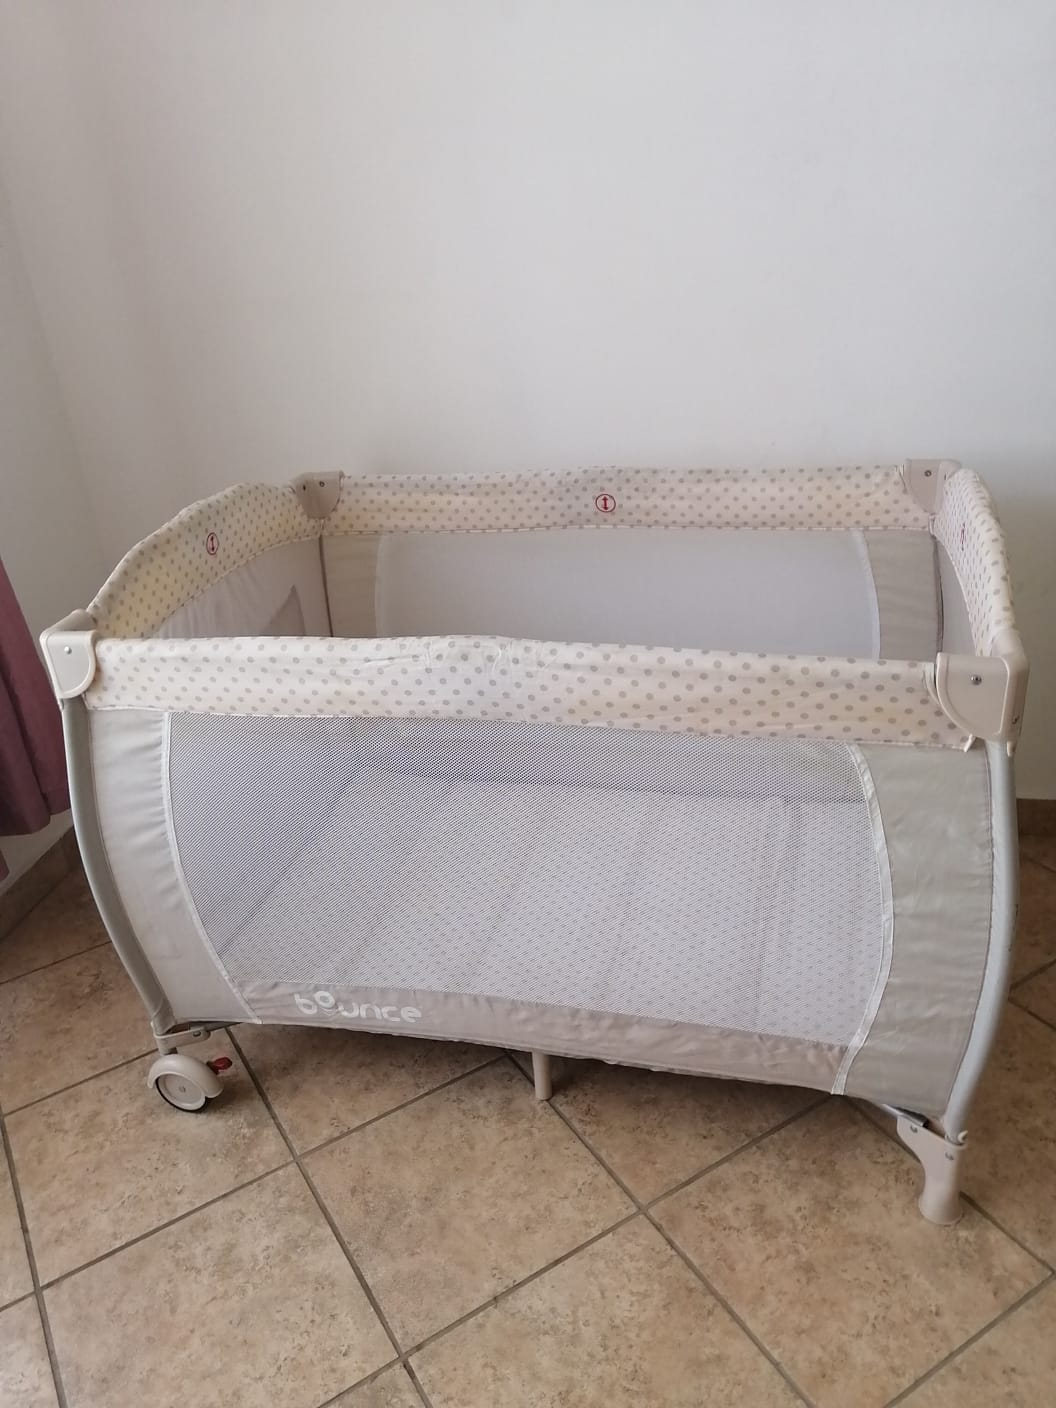 Selling baby items